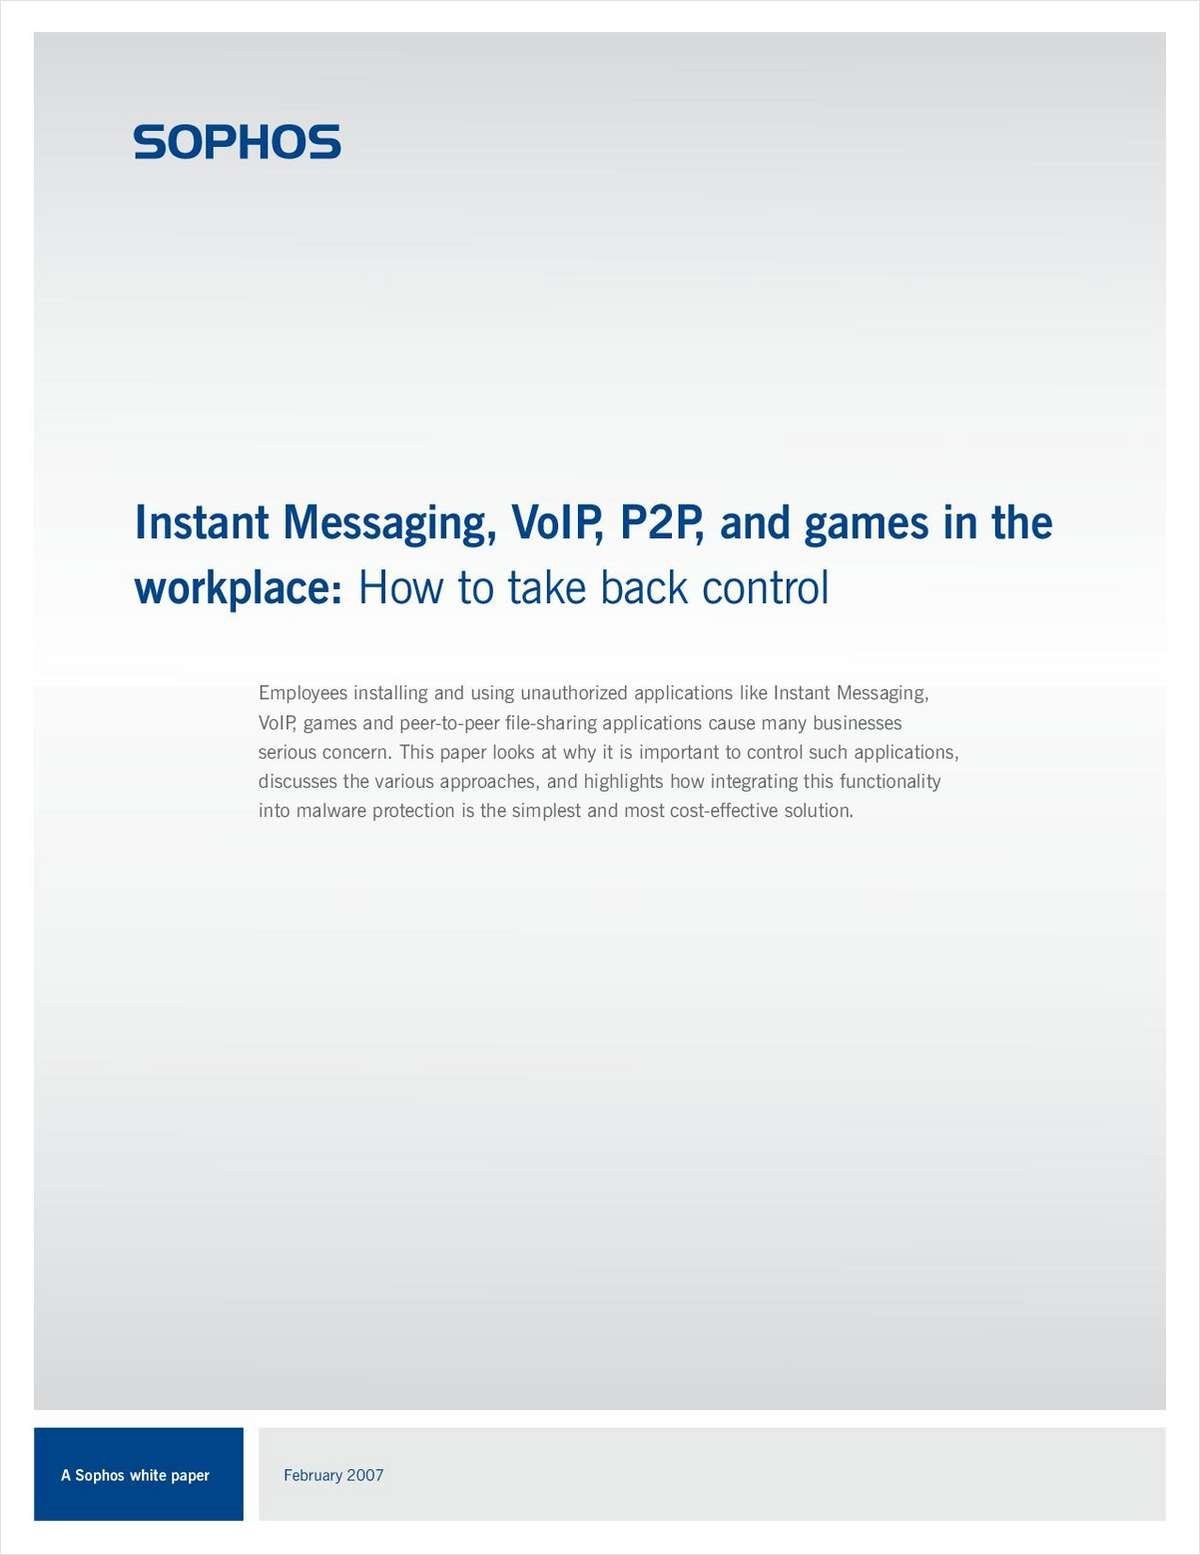 Instant Messaging, VoIP, P2P, and Games in the Workplace: How to Take Back Control